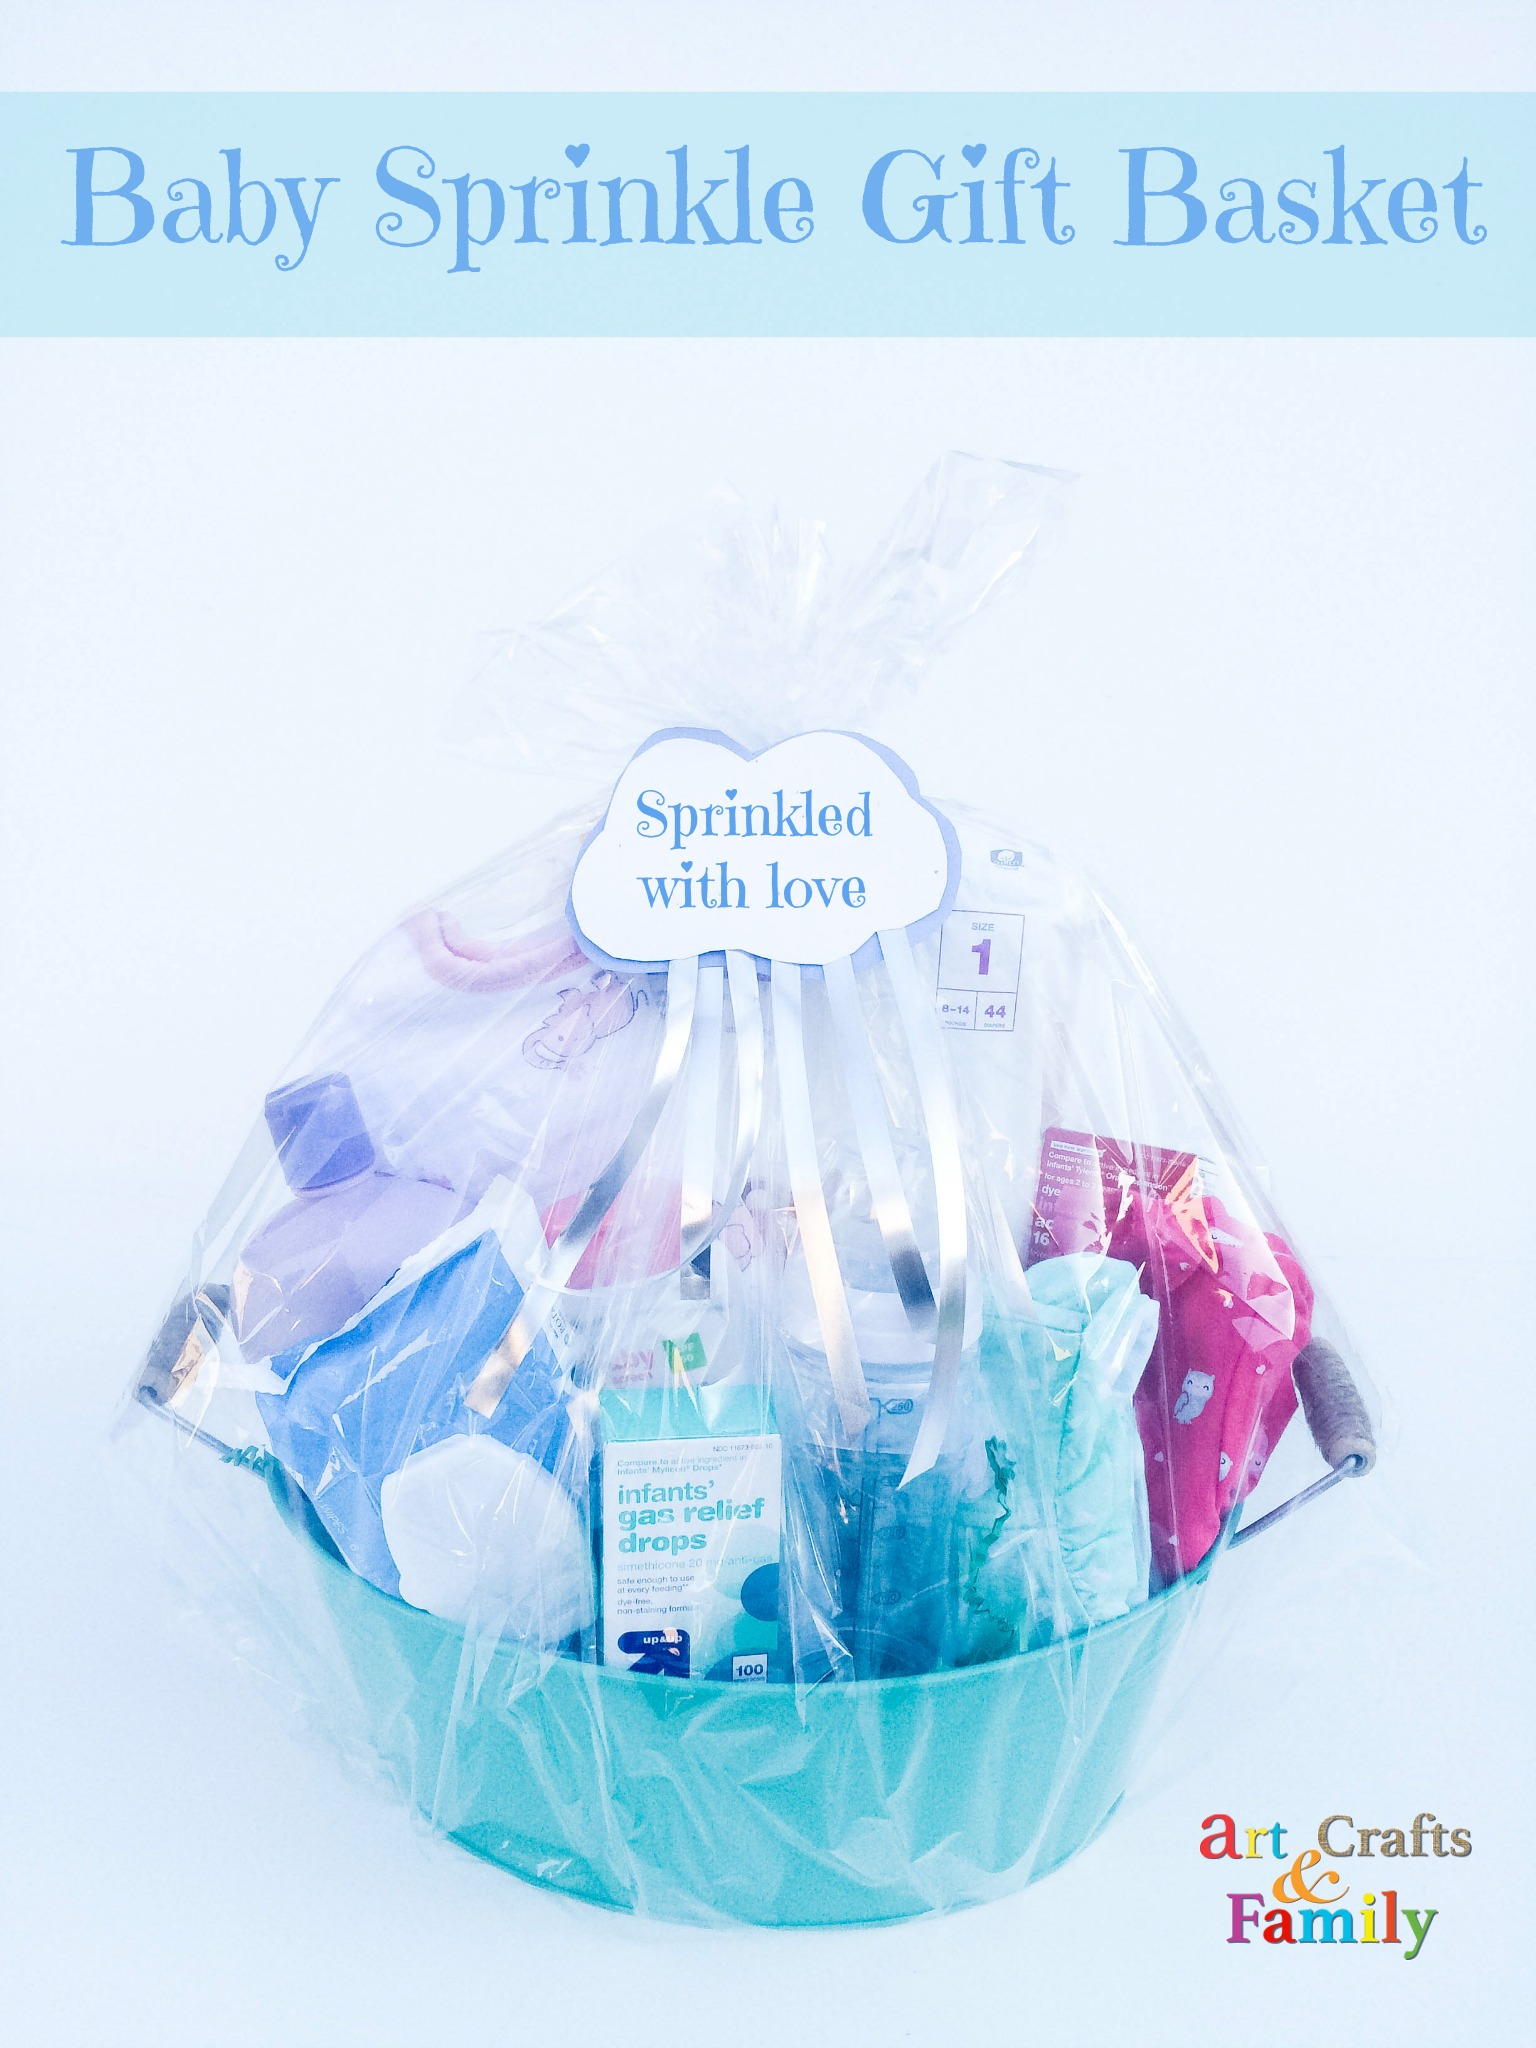 Baby Gift Basket Essentials : Baby sprinkle gift basket art crafts family